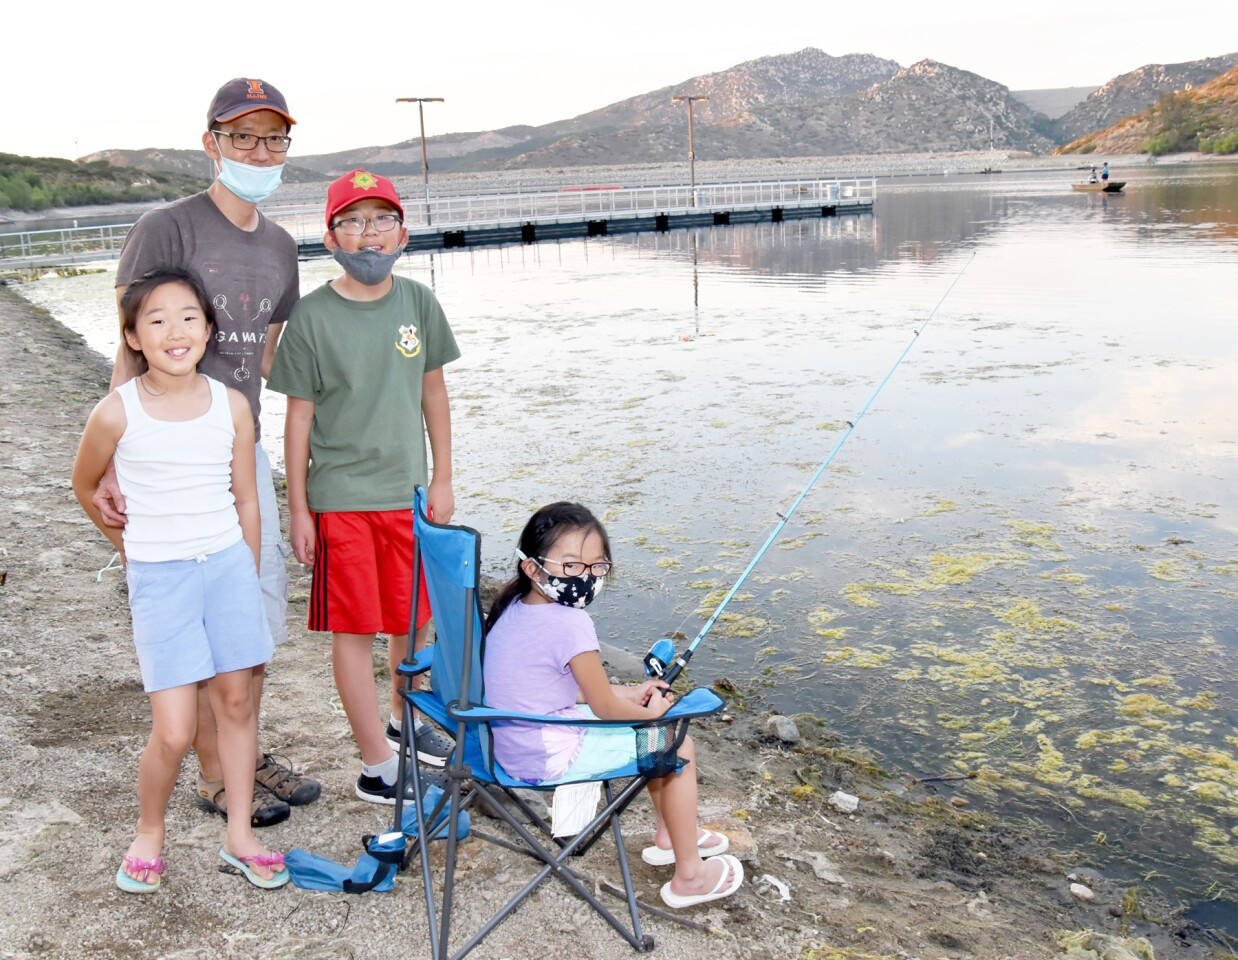 Taekjin Shin with his children, Norah, Nathan and Naomi, were among participants in the night fishing opportunity at Lake Poway on Saturday.